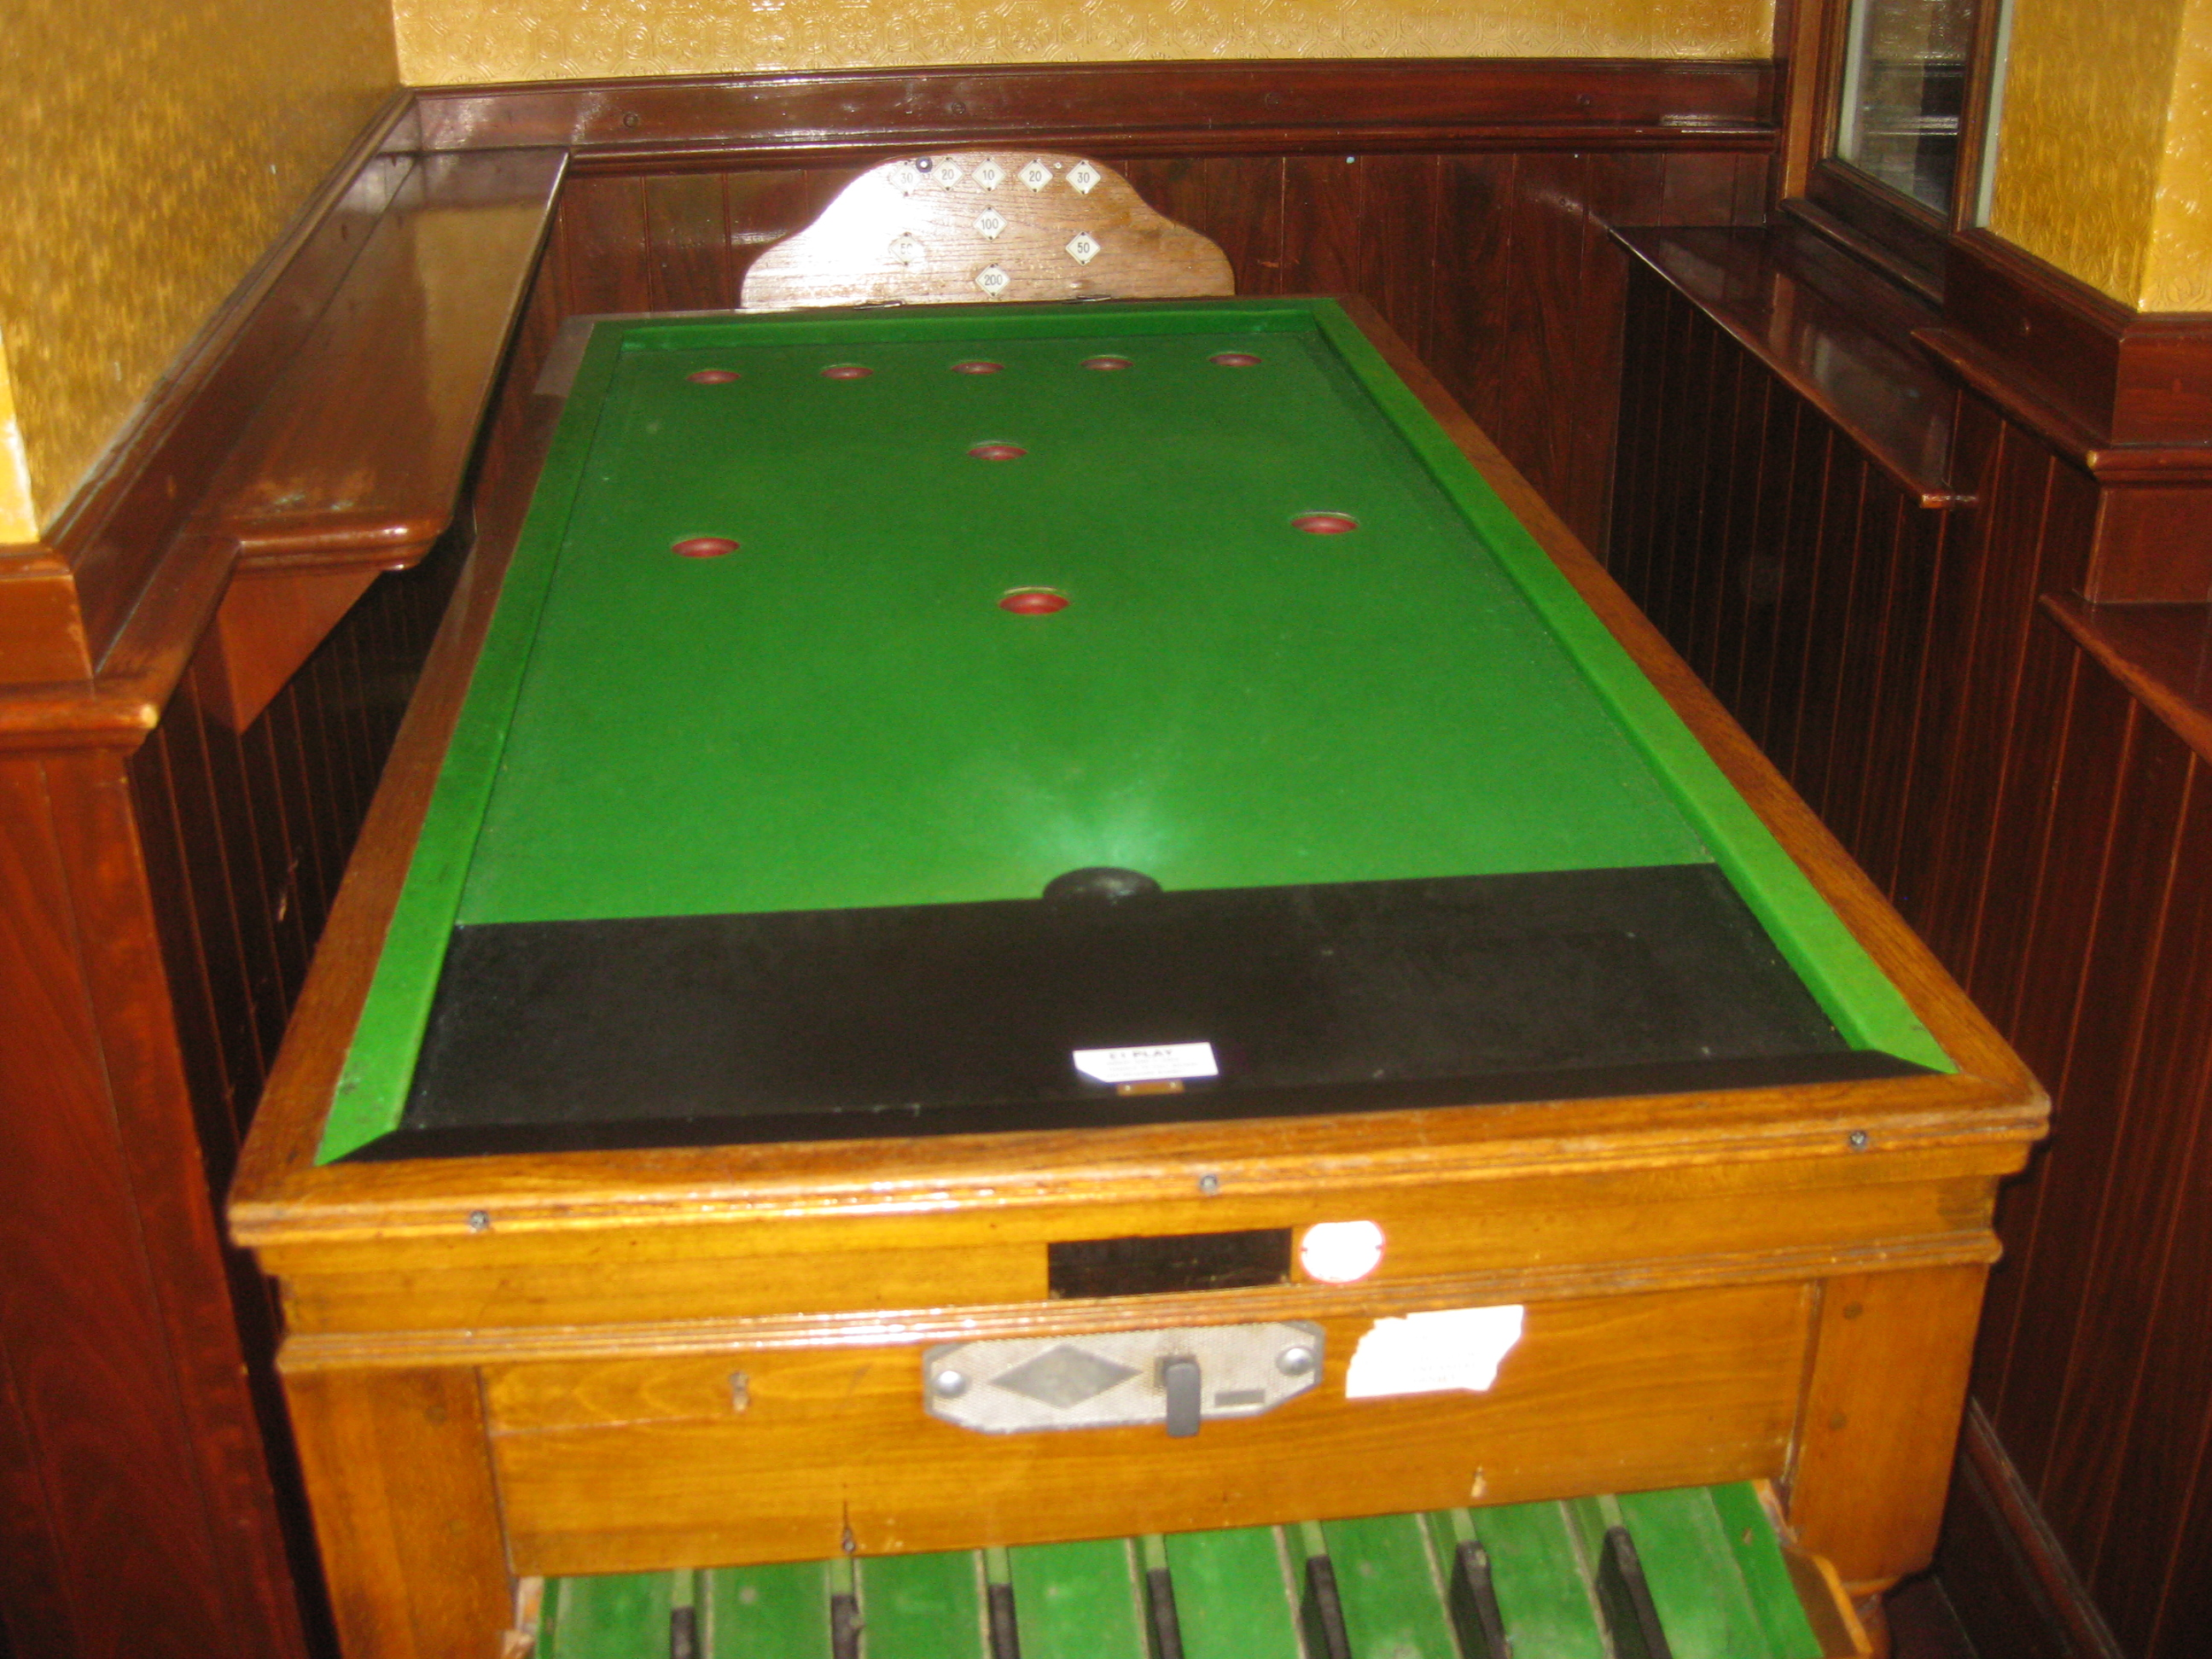 Pool Table Size Chart: Bar billiards table 1.jpg - Wikimedia Commons,Chart